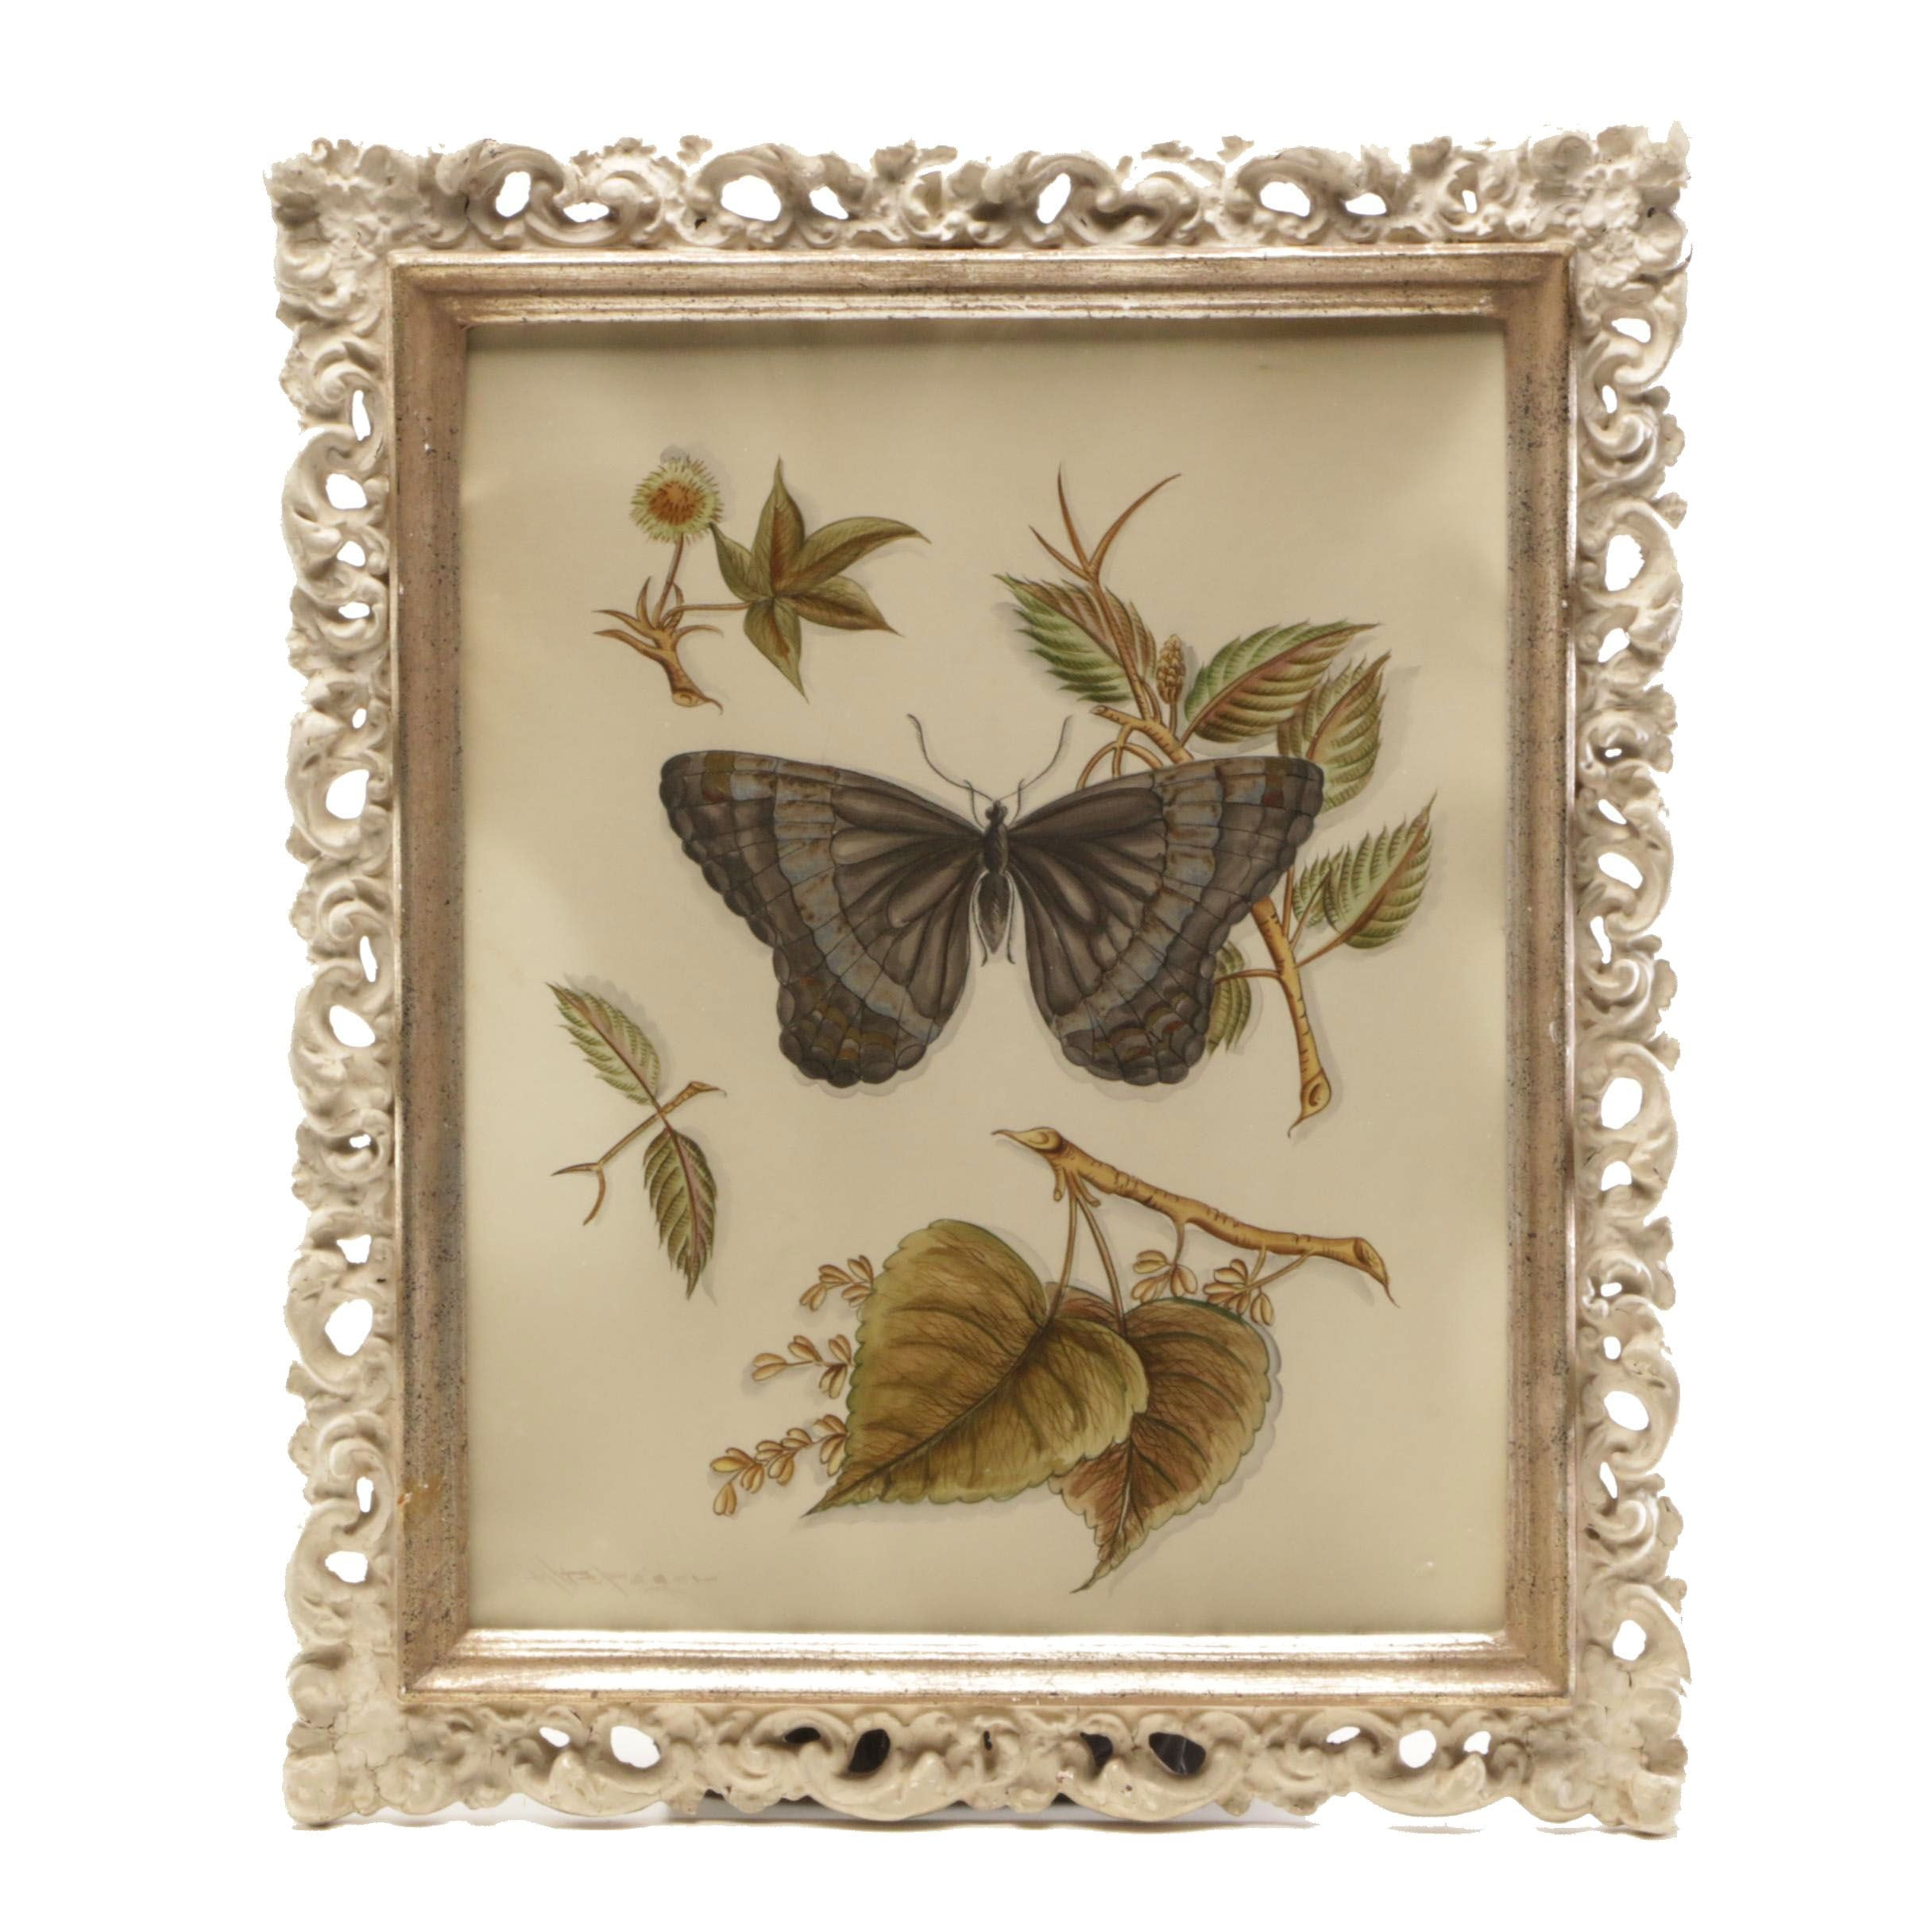 Mixed Media Painting of Butterfly and Leaves